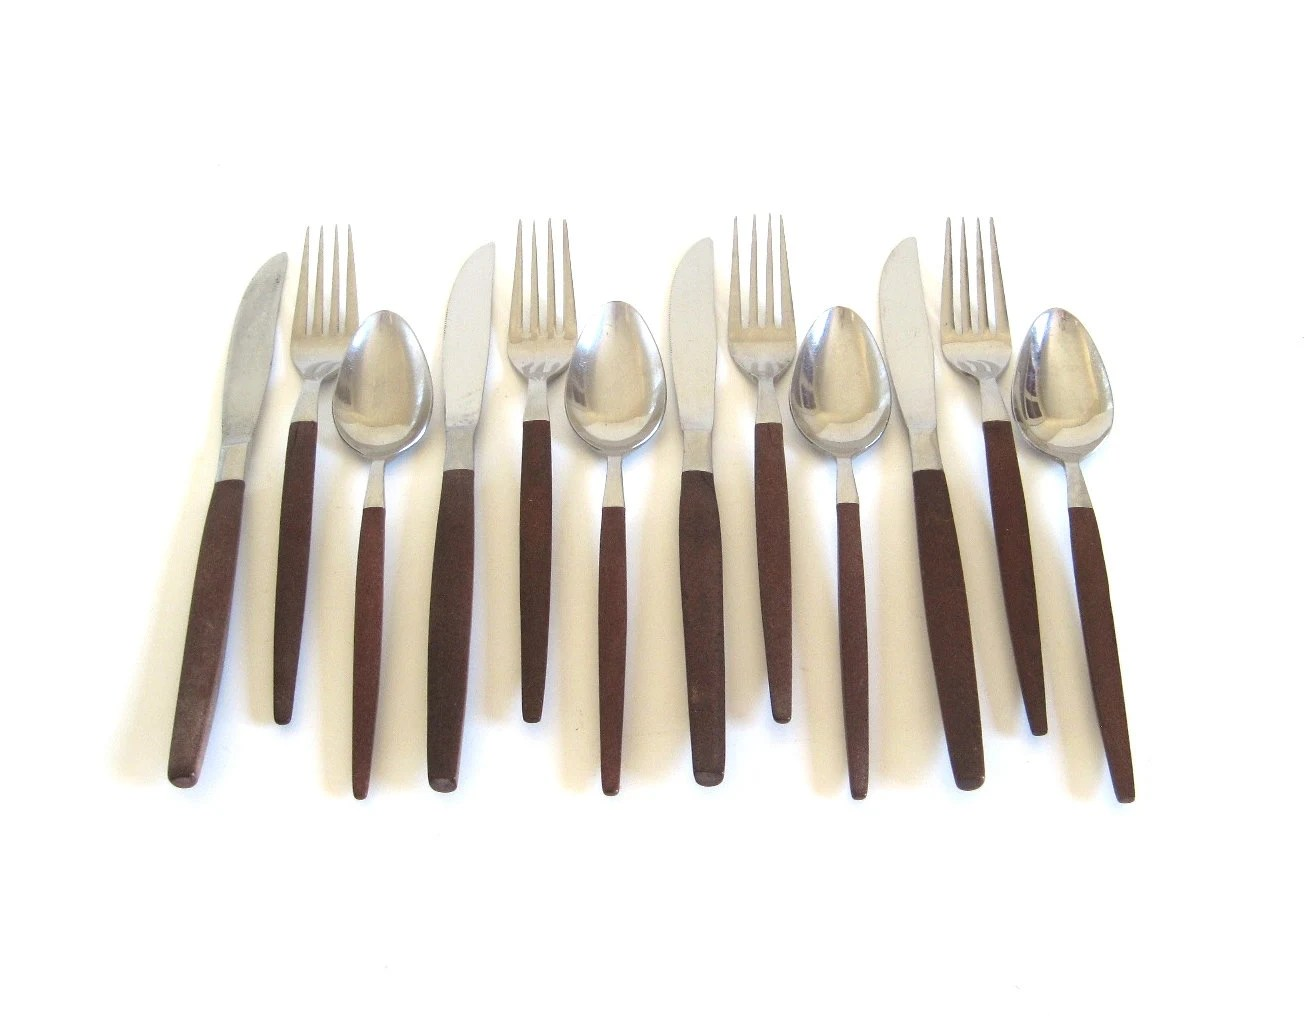 Contemporary Stainless Steel Flatware Danish Modern Stainless Flatware Service For 4 By